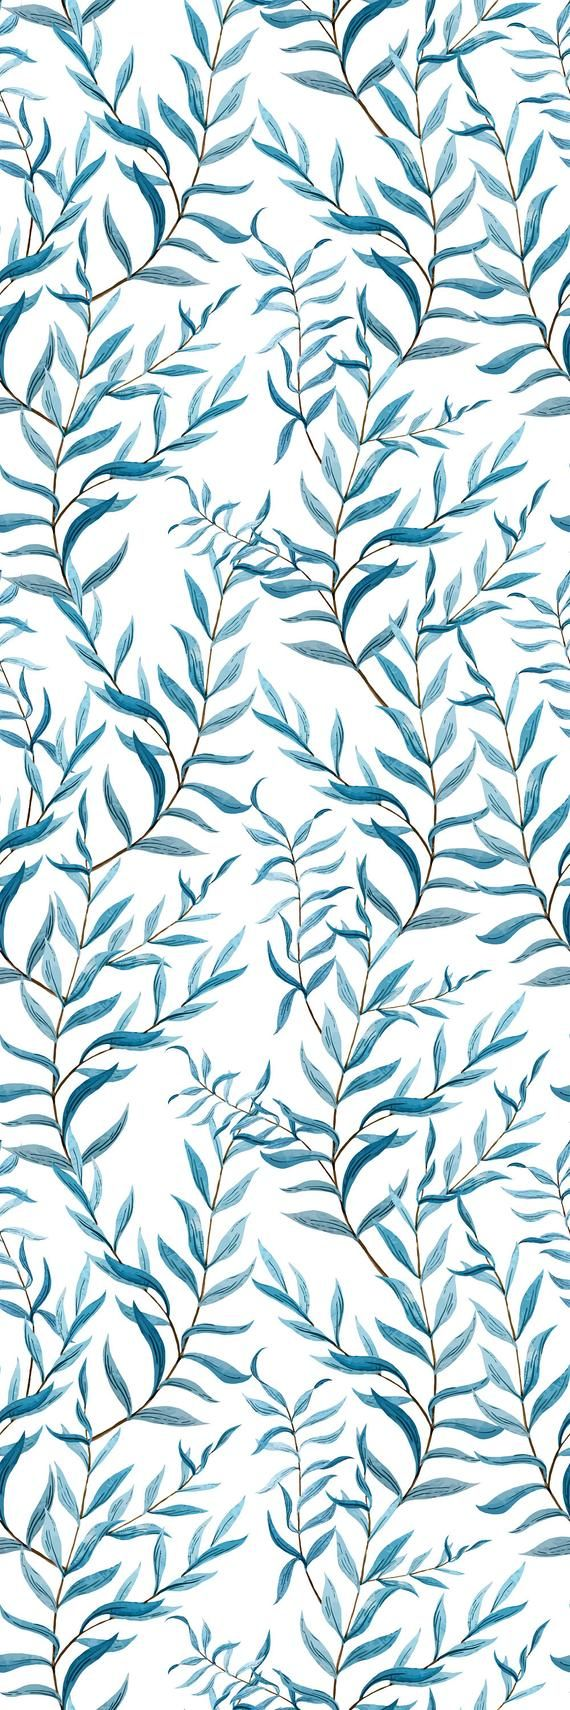 Removable Wallpaper Mural Peel Stick Blue Leaves Watercolor Etsy Iphone Background Wallpaper Mural Wallpaper Cute Patterns Wallpaper